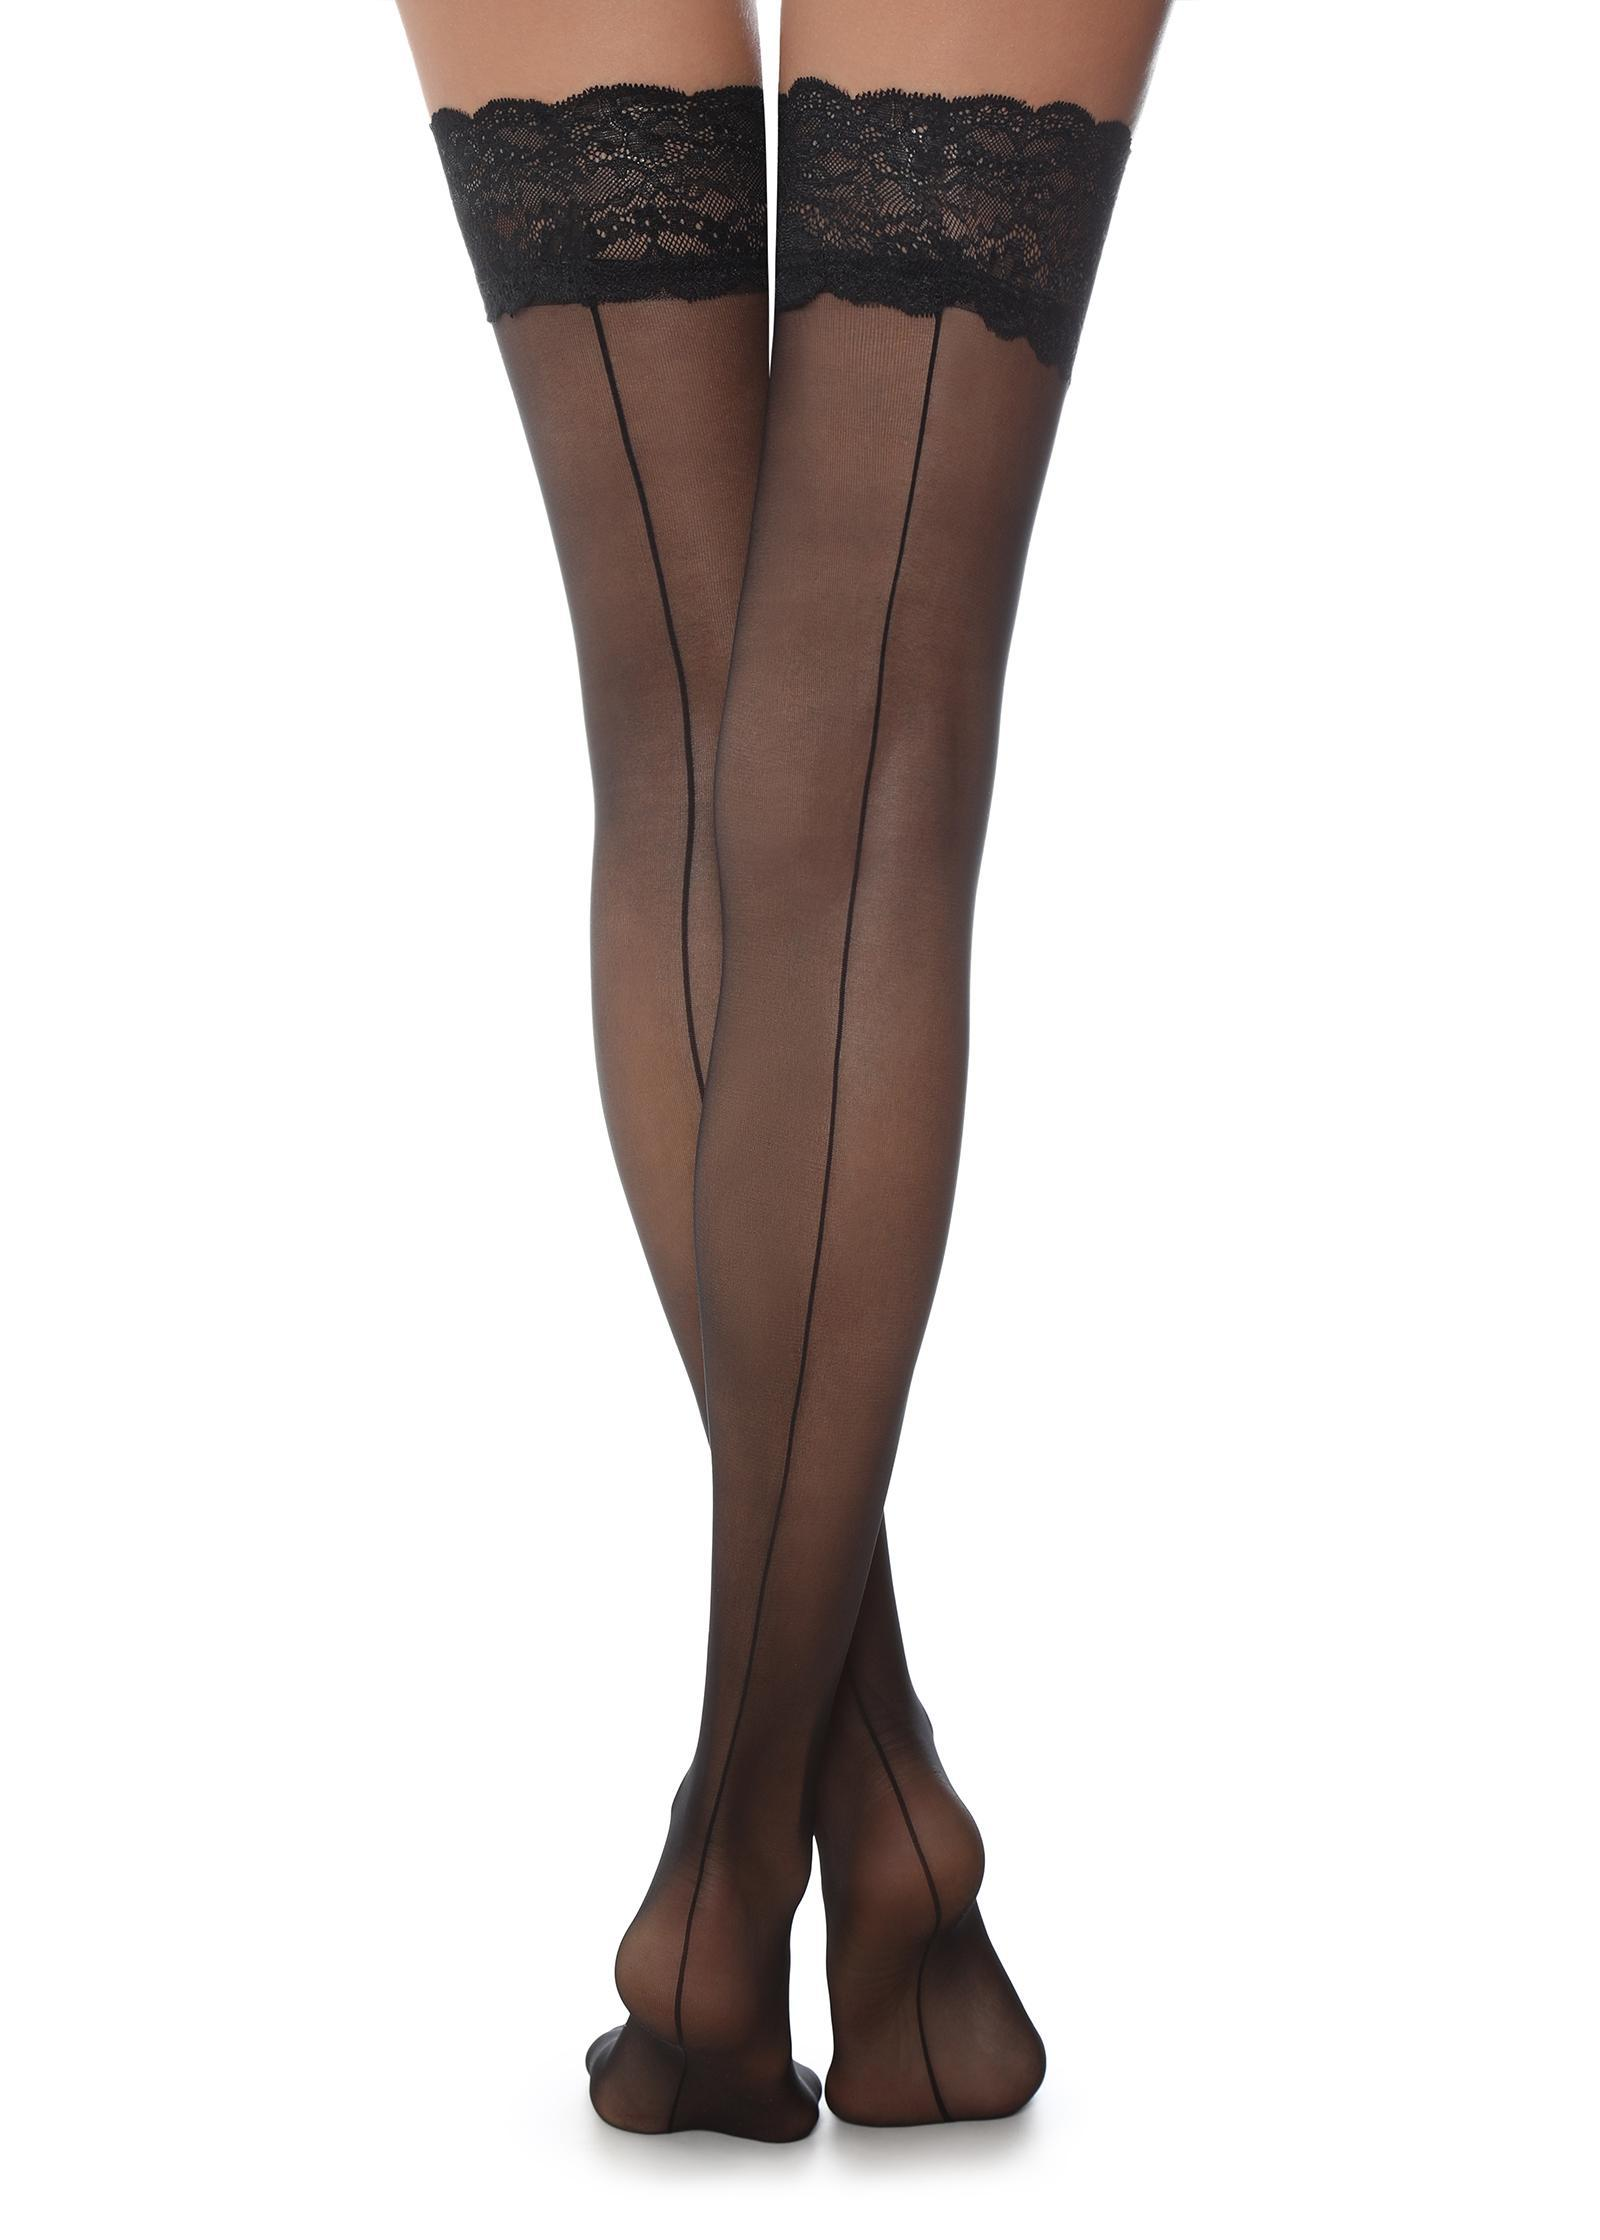 5b3d8b64536 Lyst - Calzedonia Back Seam Hold-ups in Black